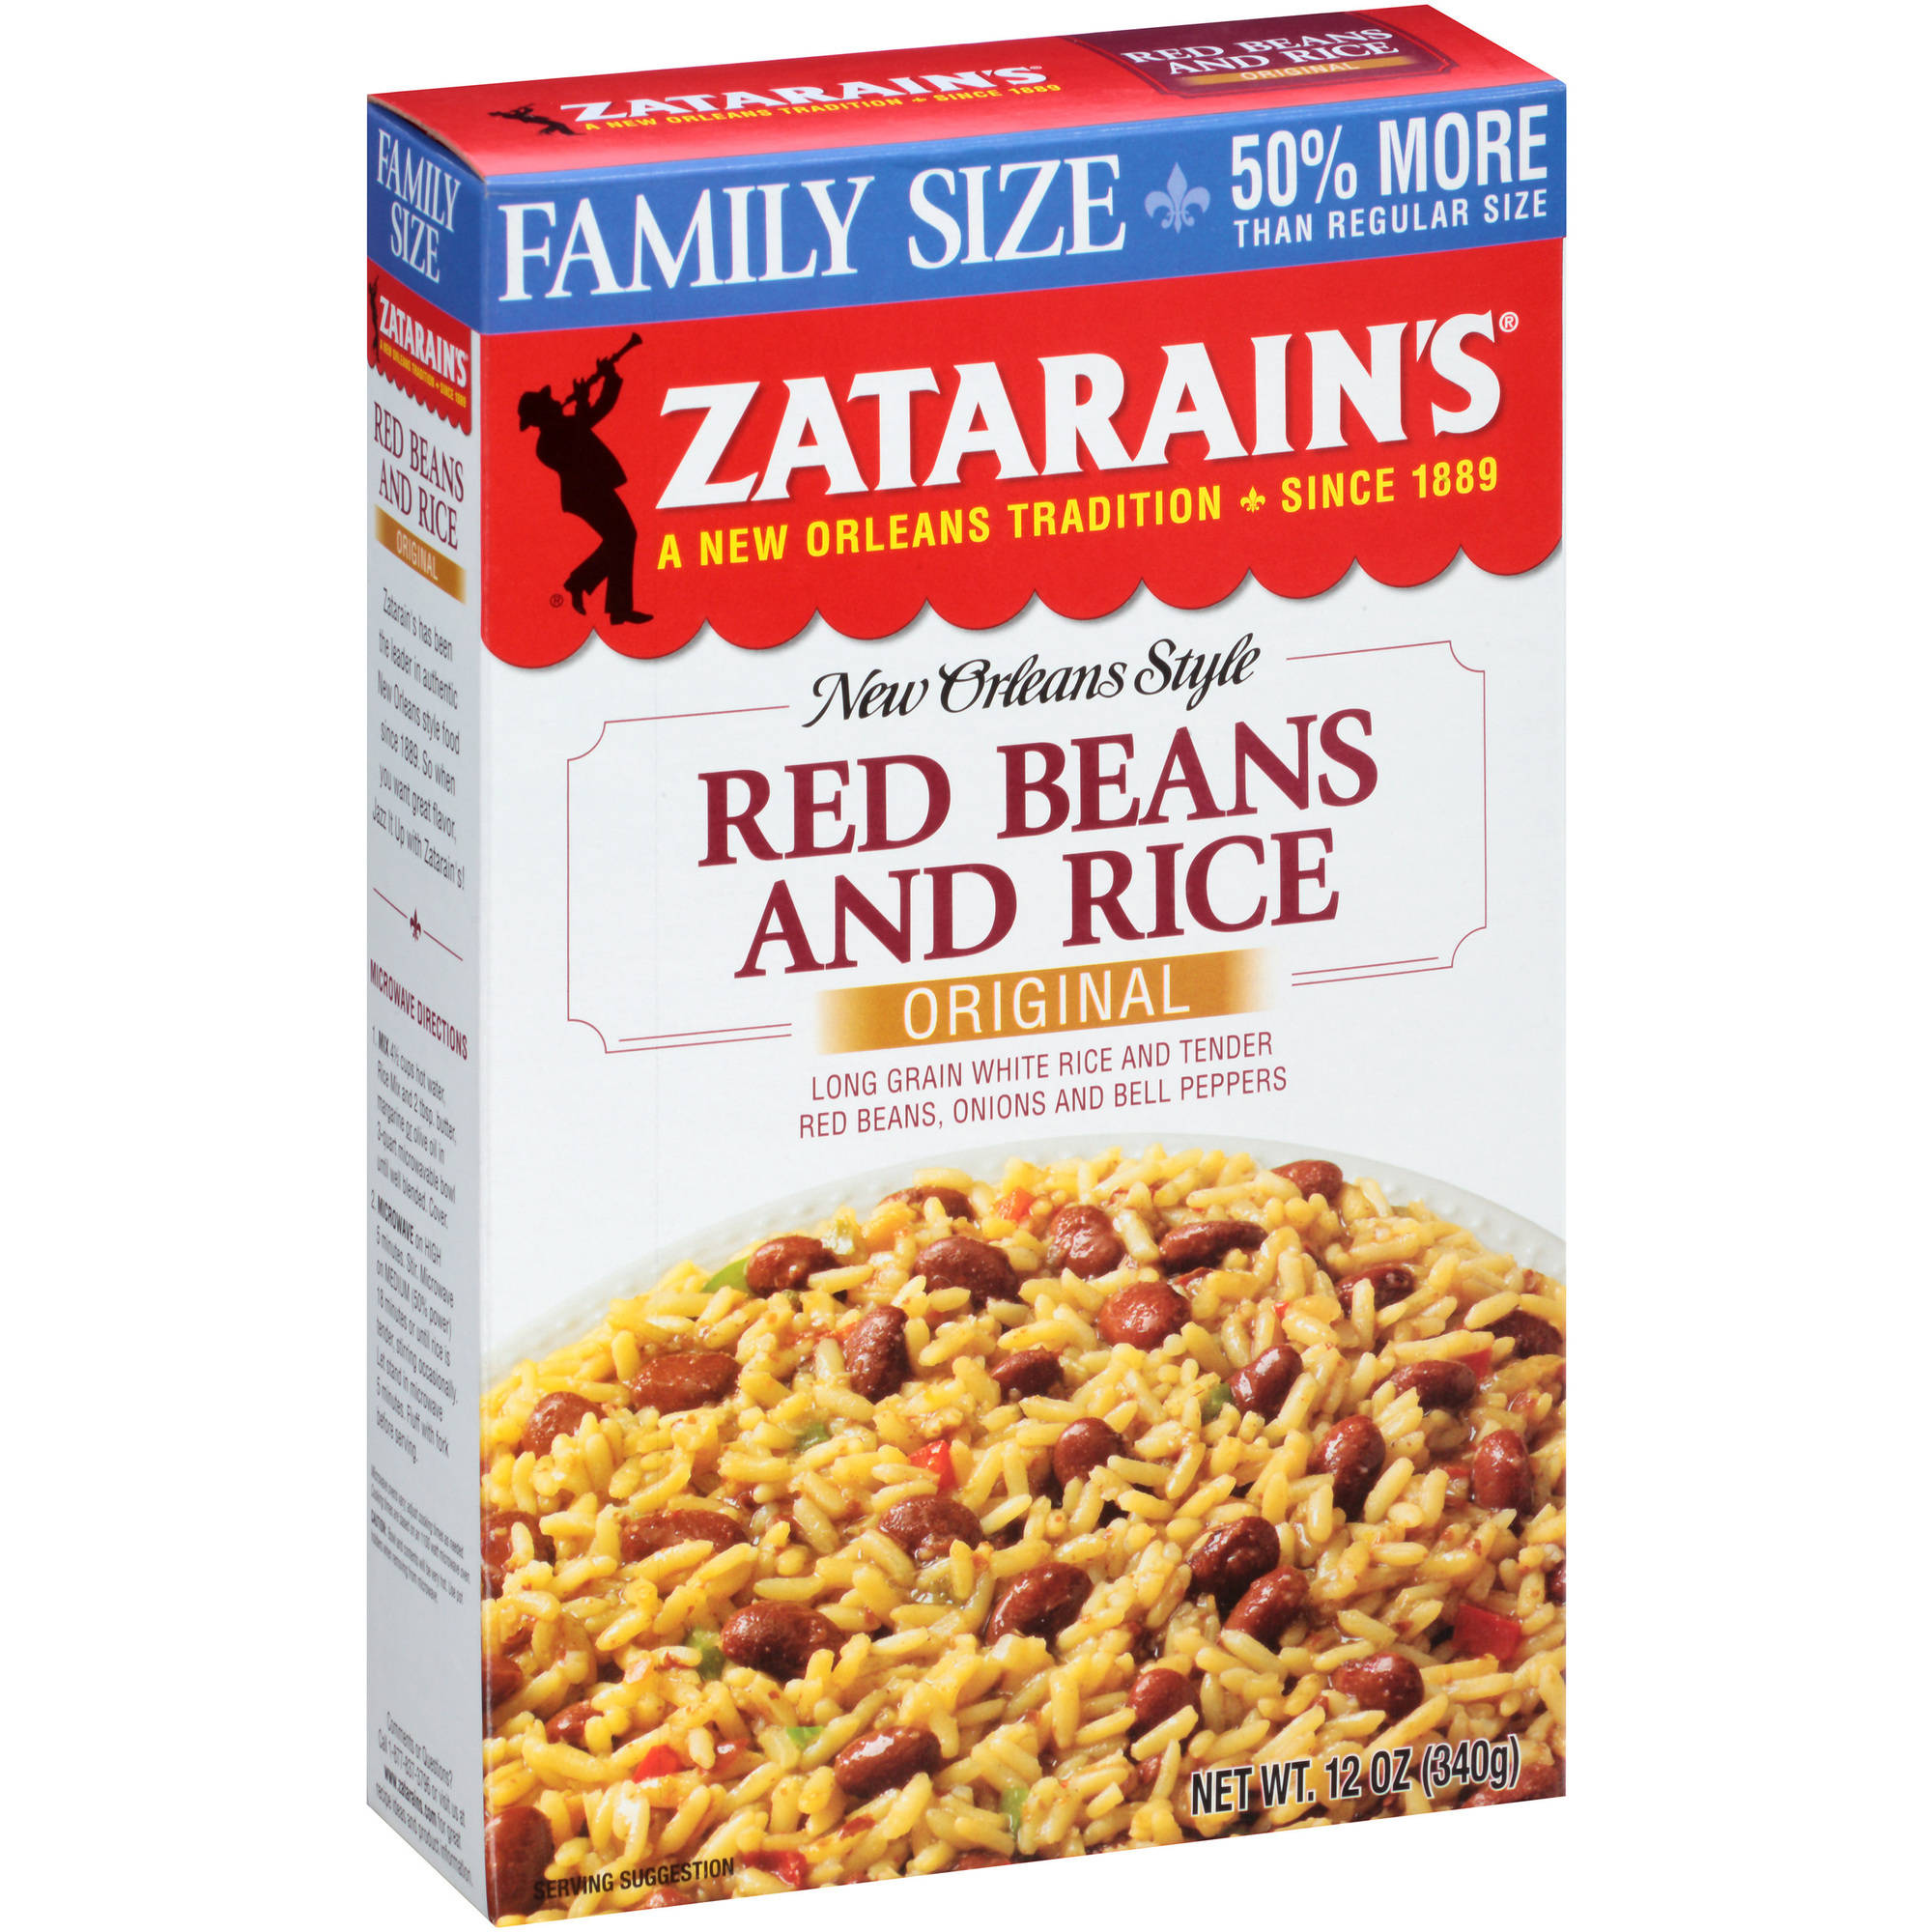 Zatarain's Original Red Beans and Rice Mix, 12 oz